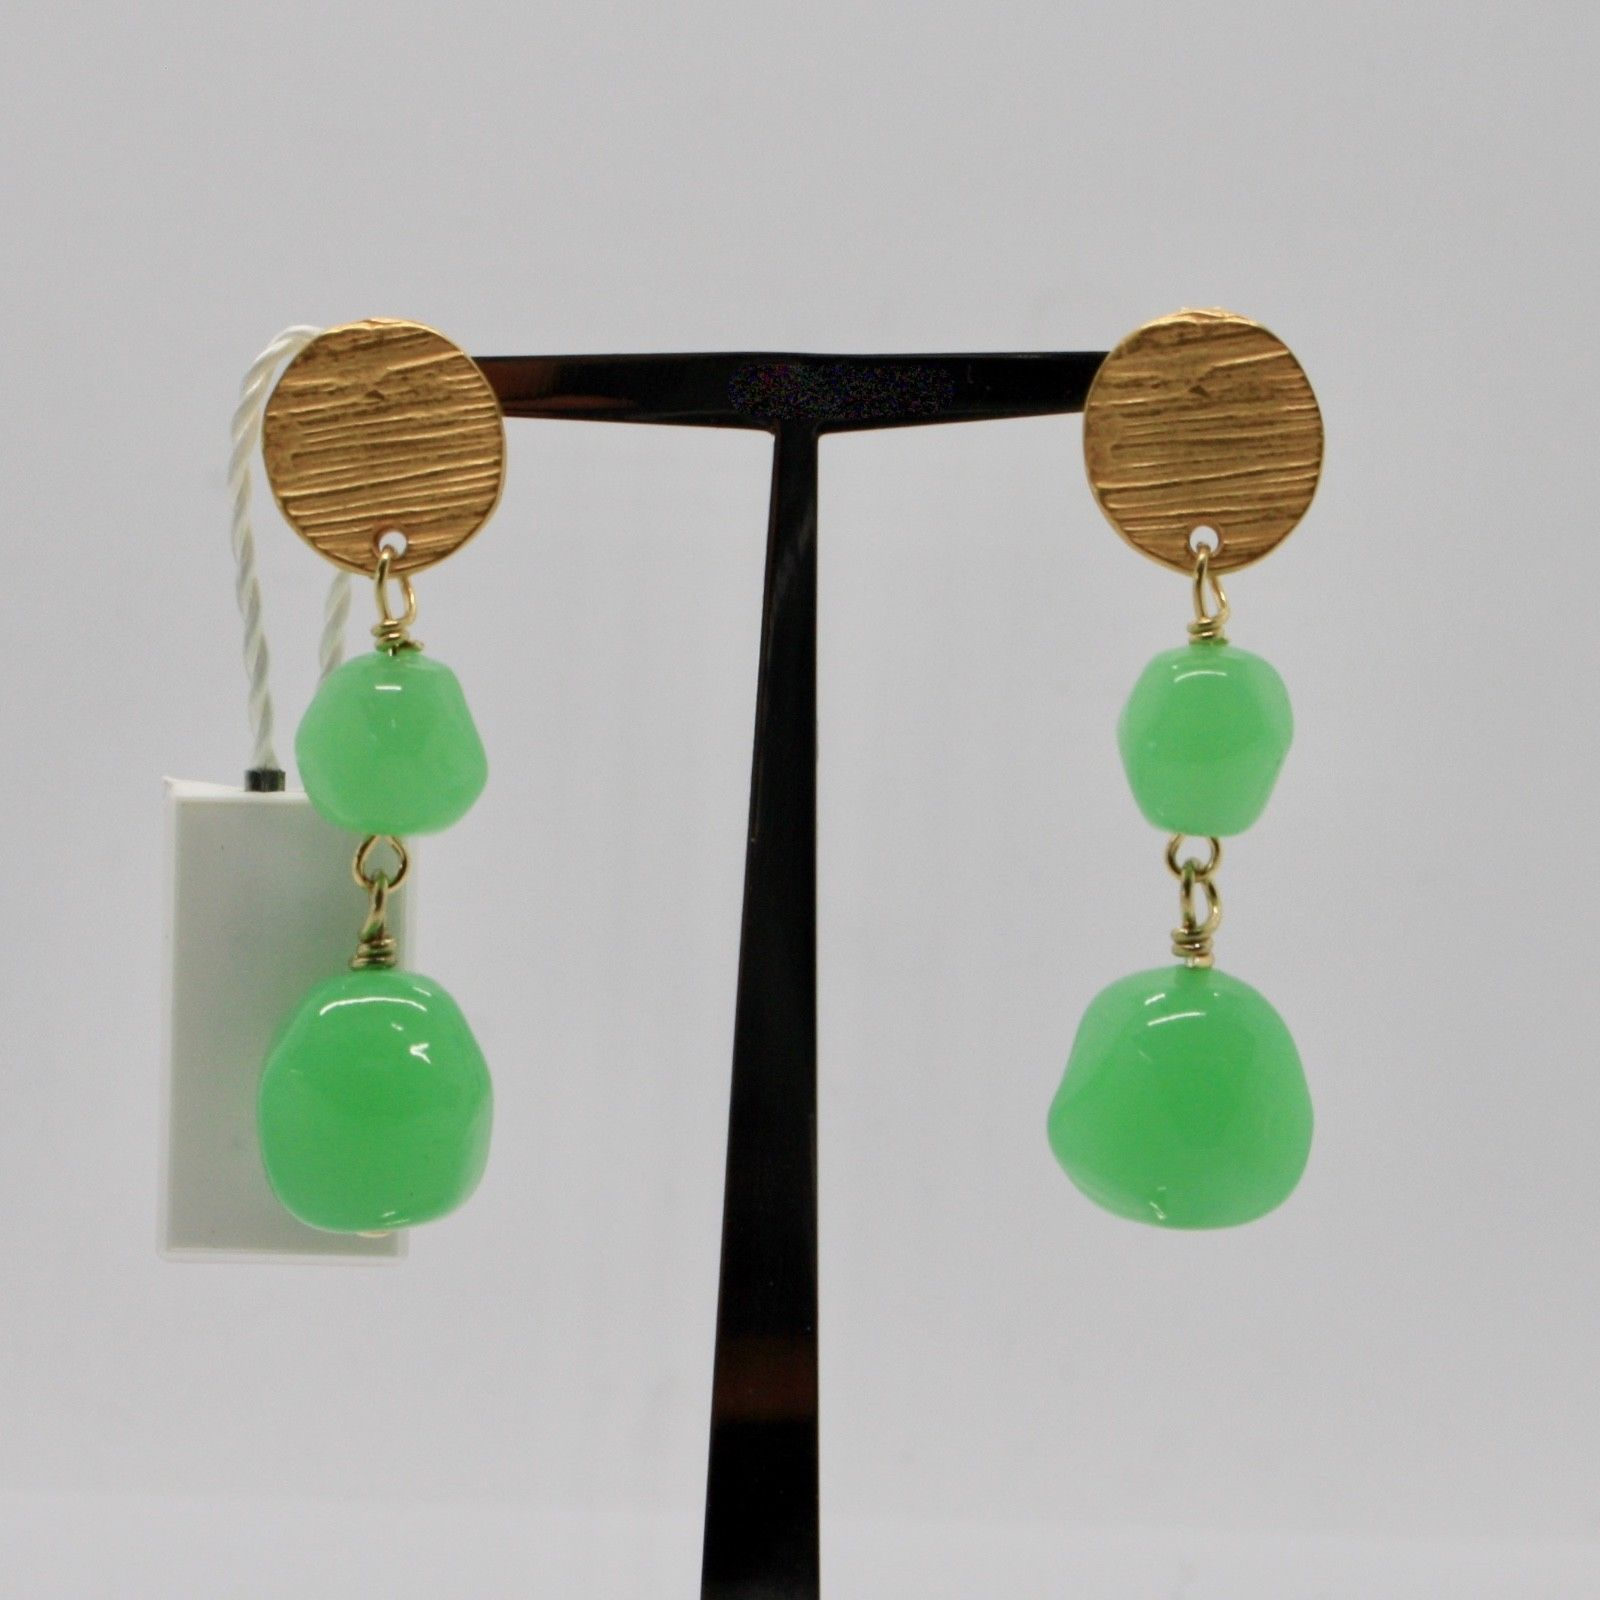 DROP EARRINGS ANTICA MURRINA VENEZIA WITH MURANO GLASS GREEN OR572A08